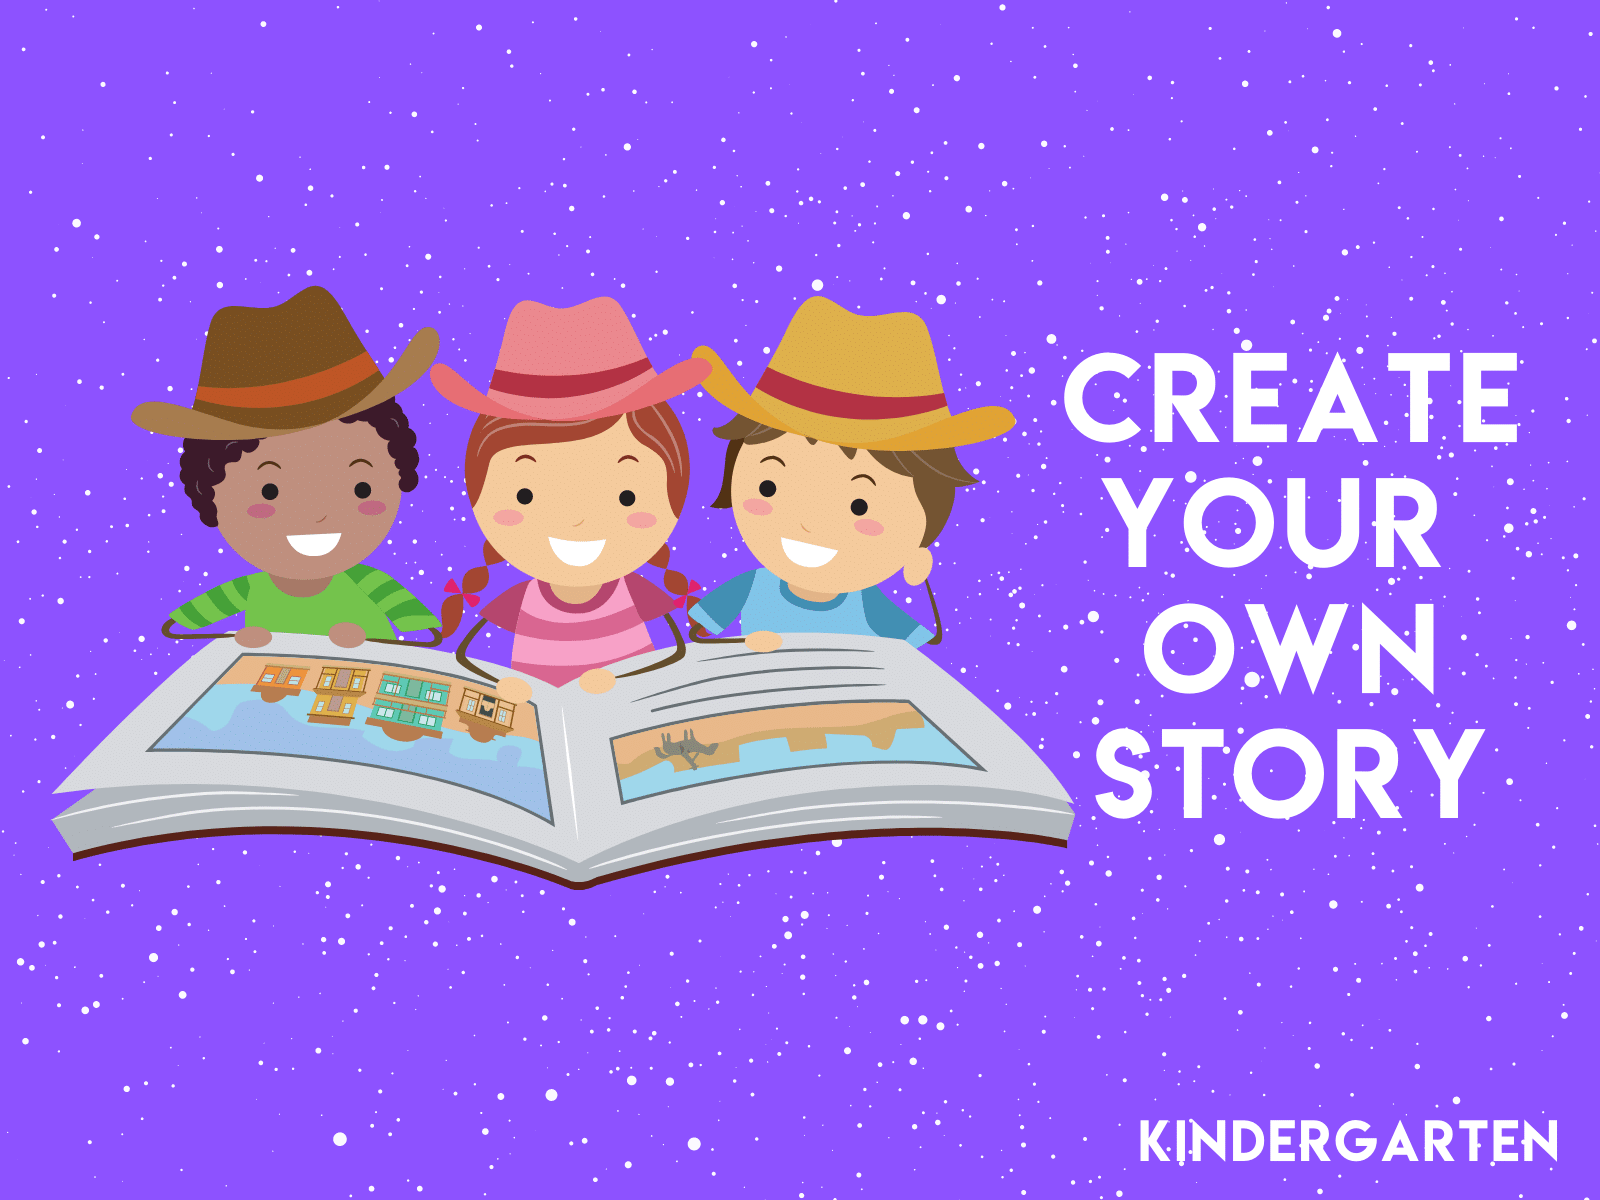 Learn the five main parts of a good story and how to write your own with this free kindergarten story guide.